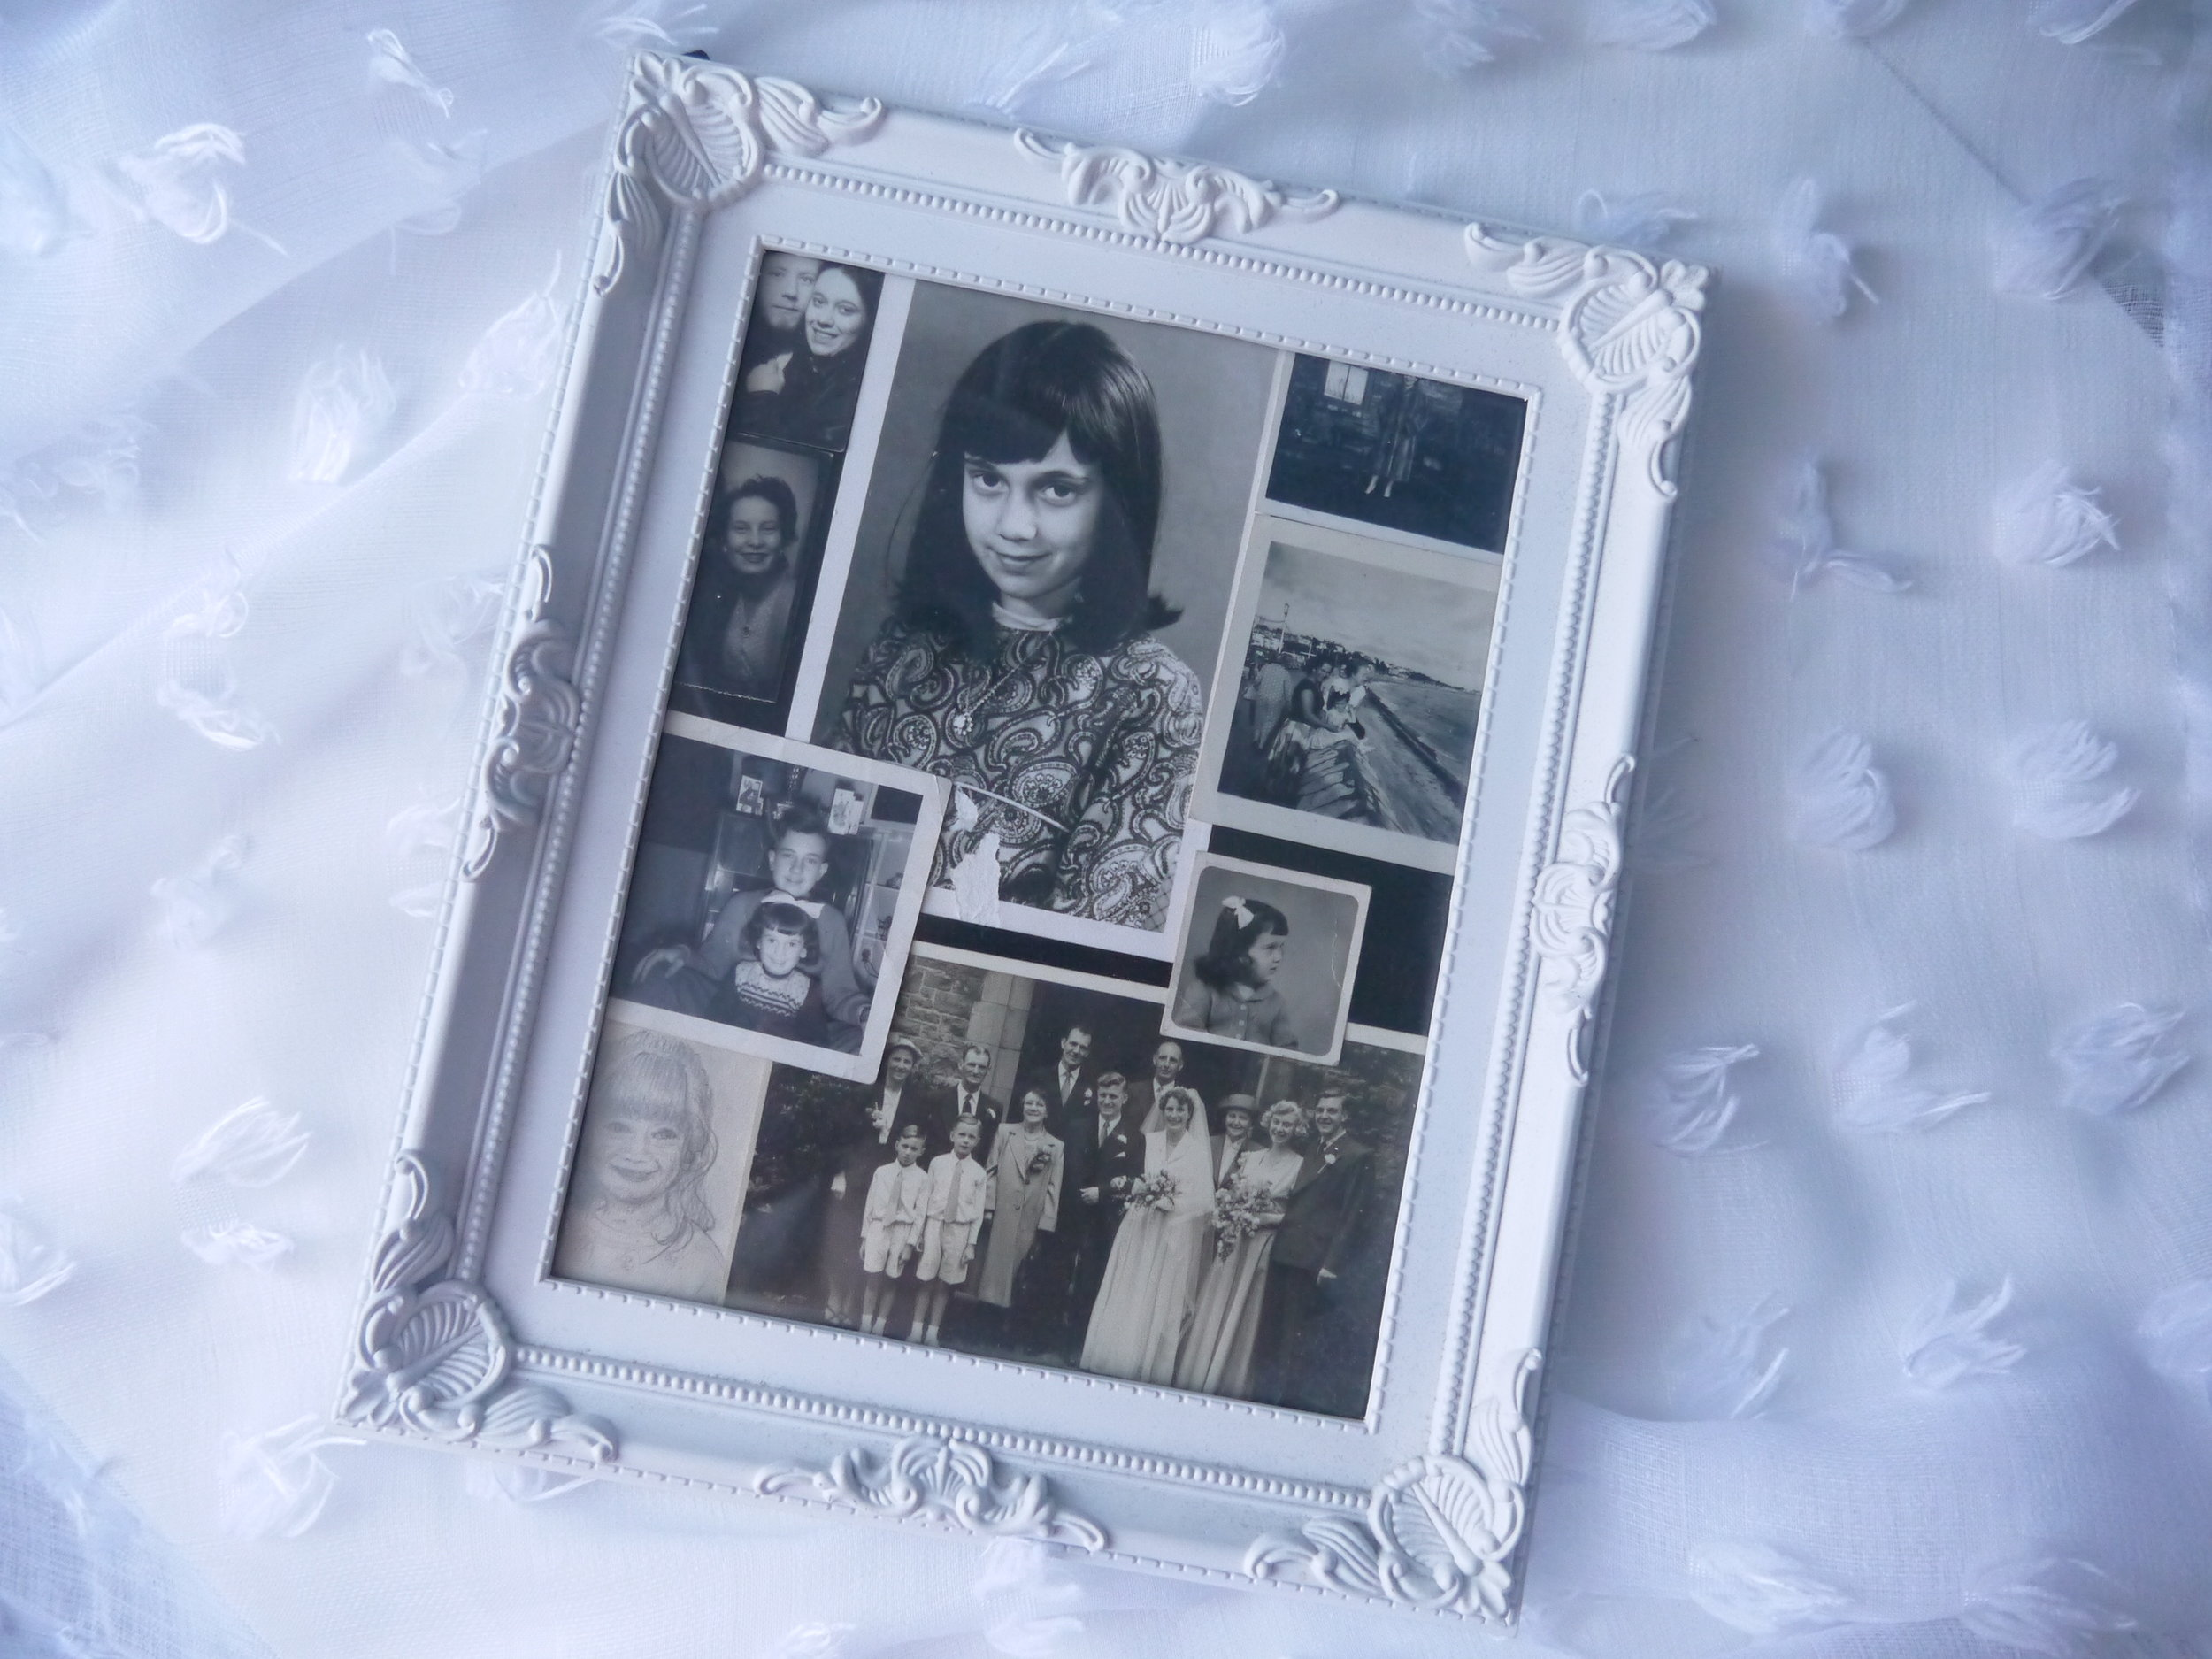 Framing my favourite old photos so that I can enjoy them, rather than them living in a box!